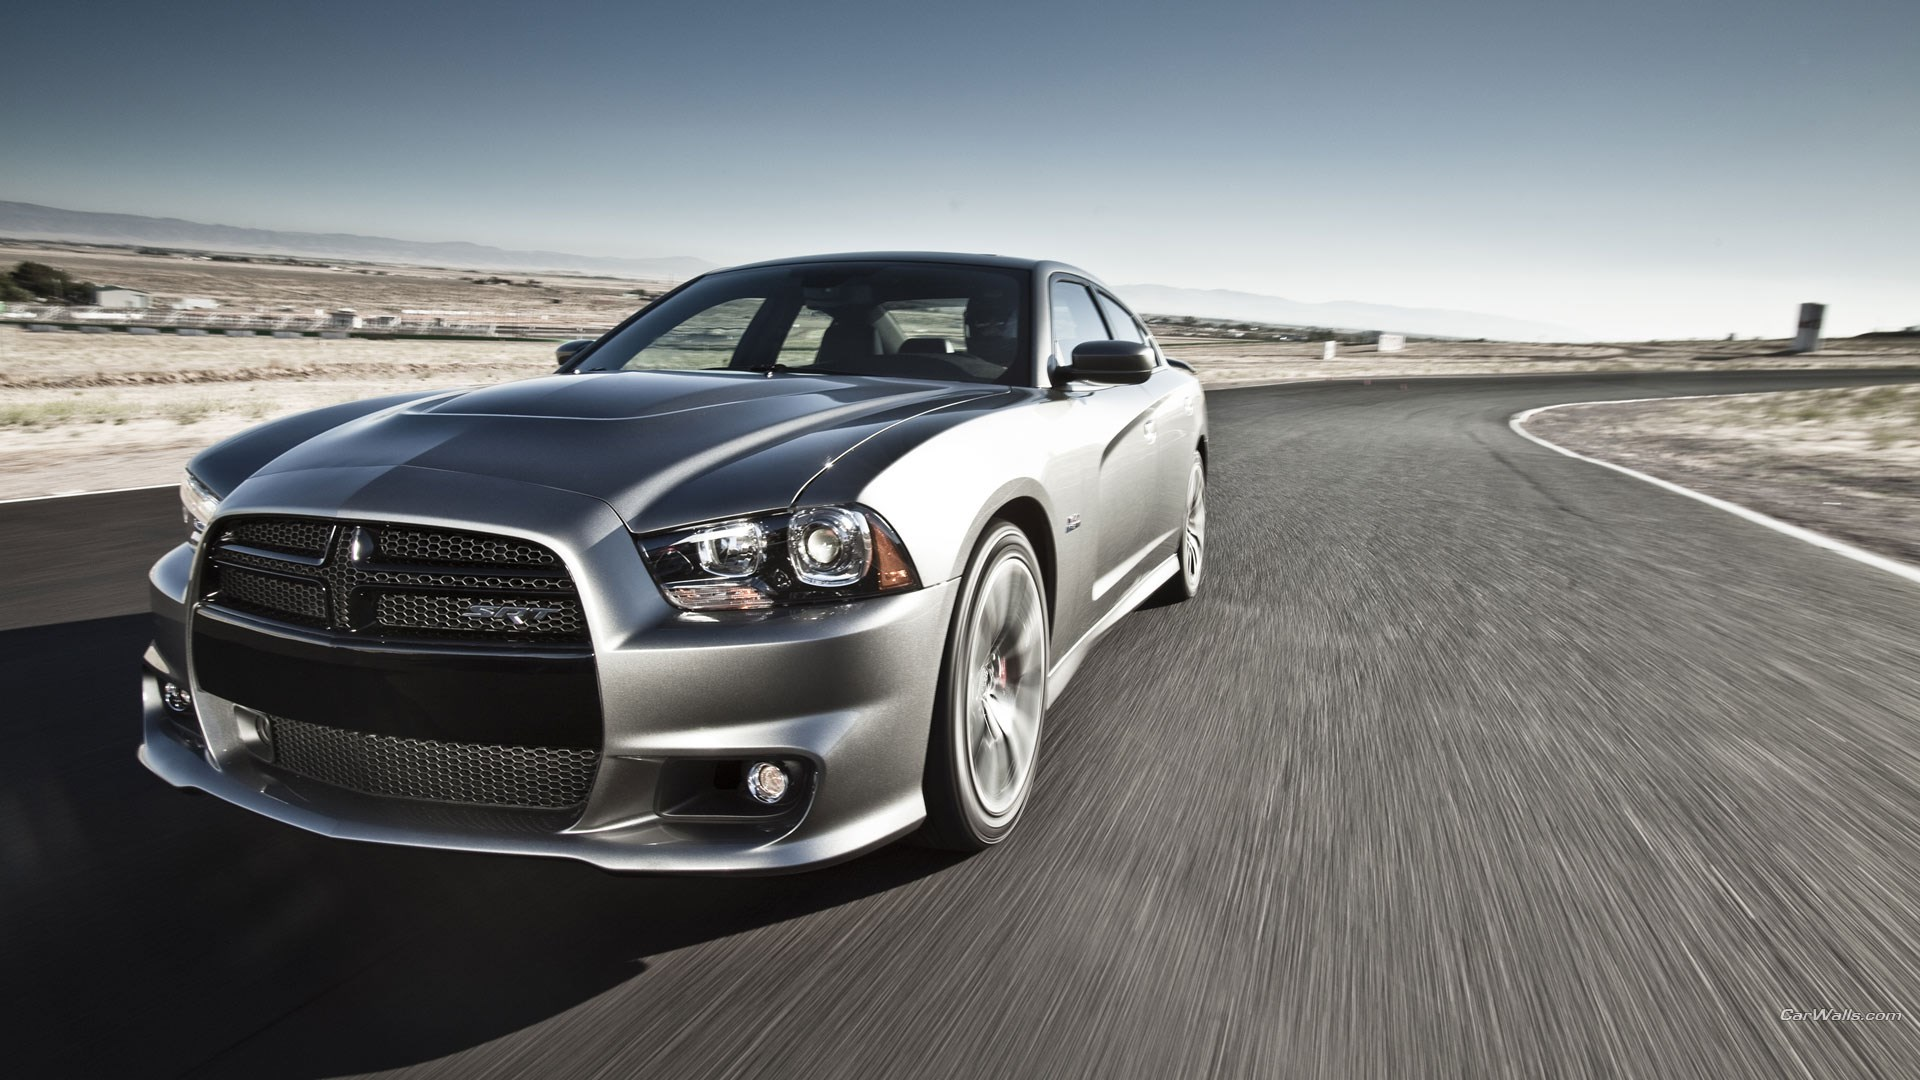 1920x1080-Free-desktop-dodge-charger-srt-wallpaper-wpc900675